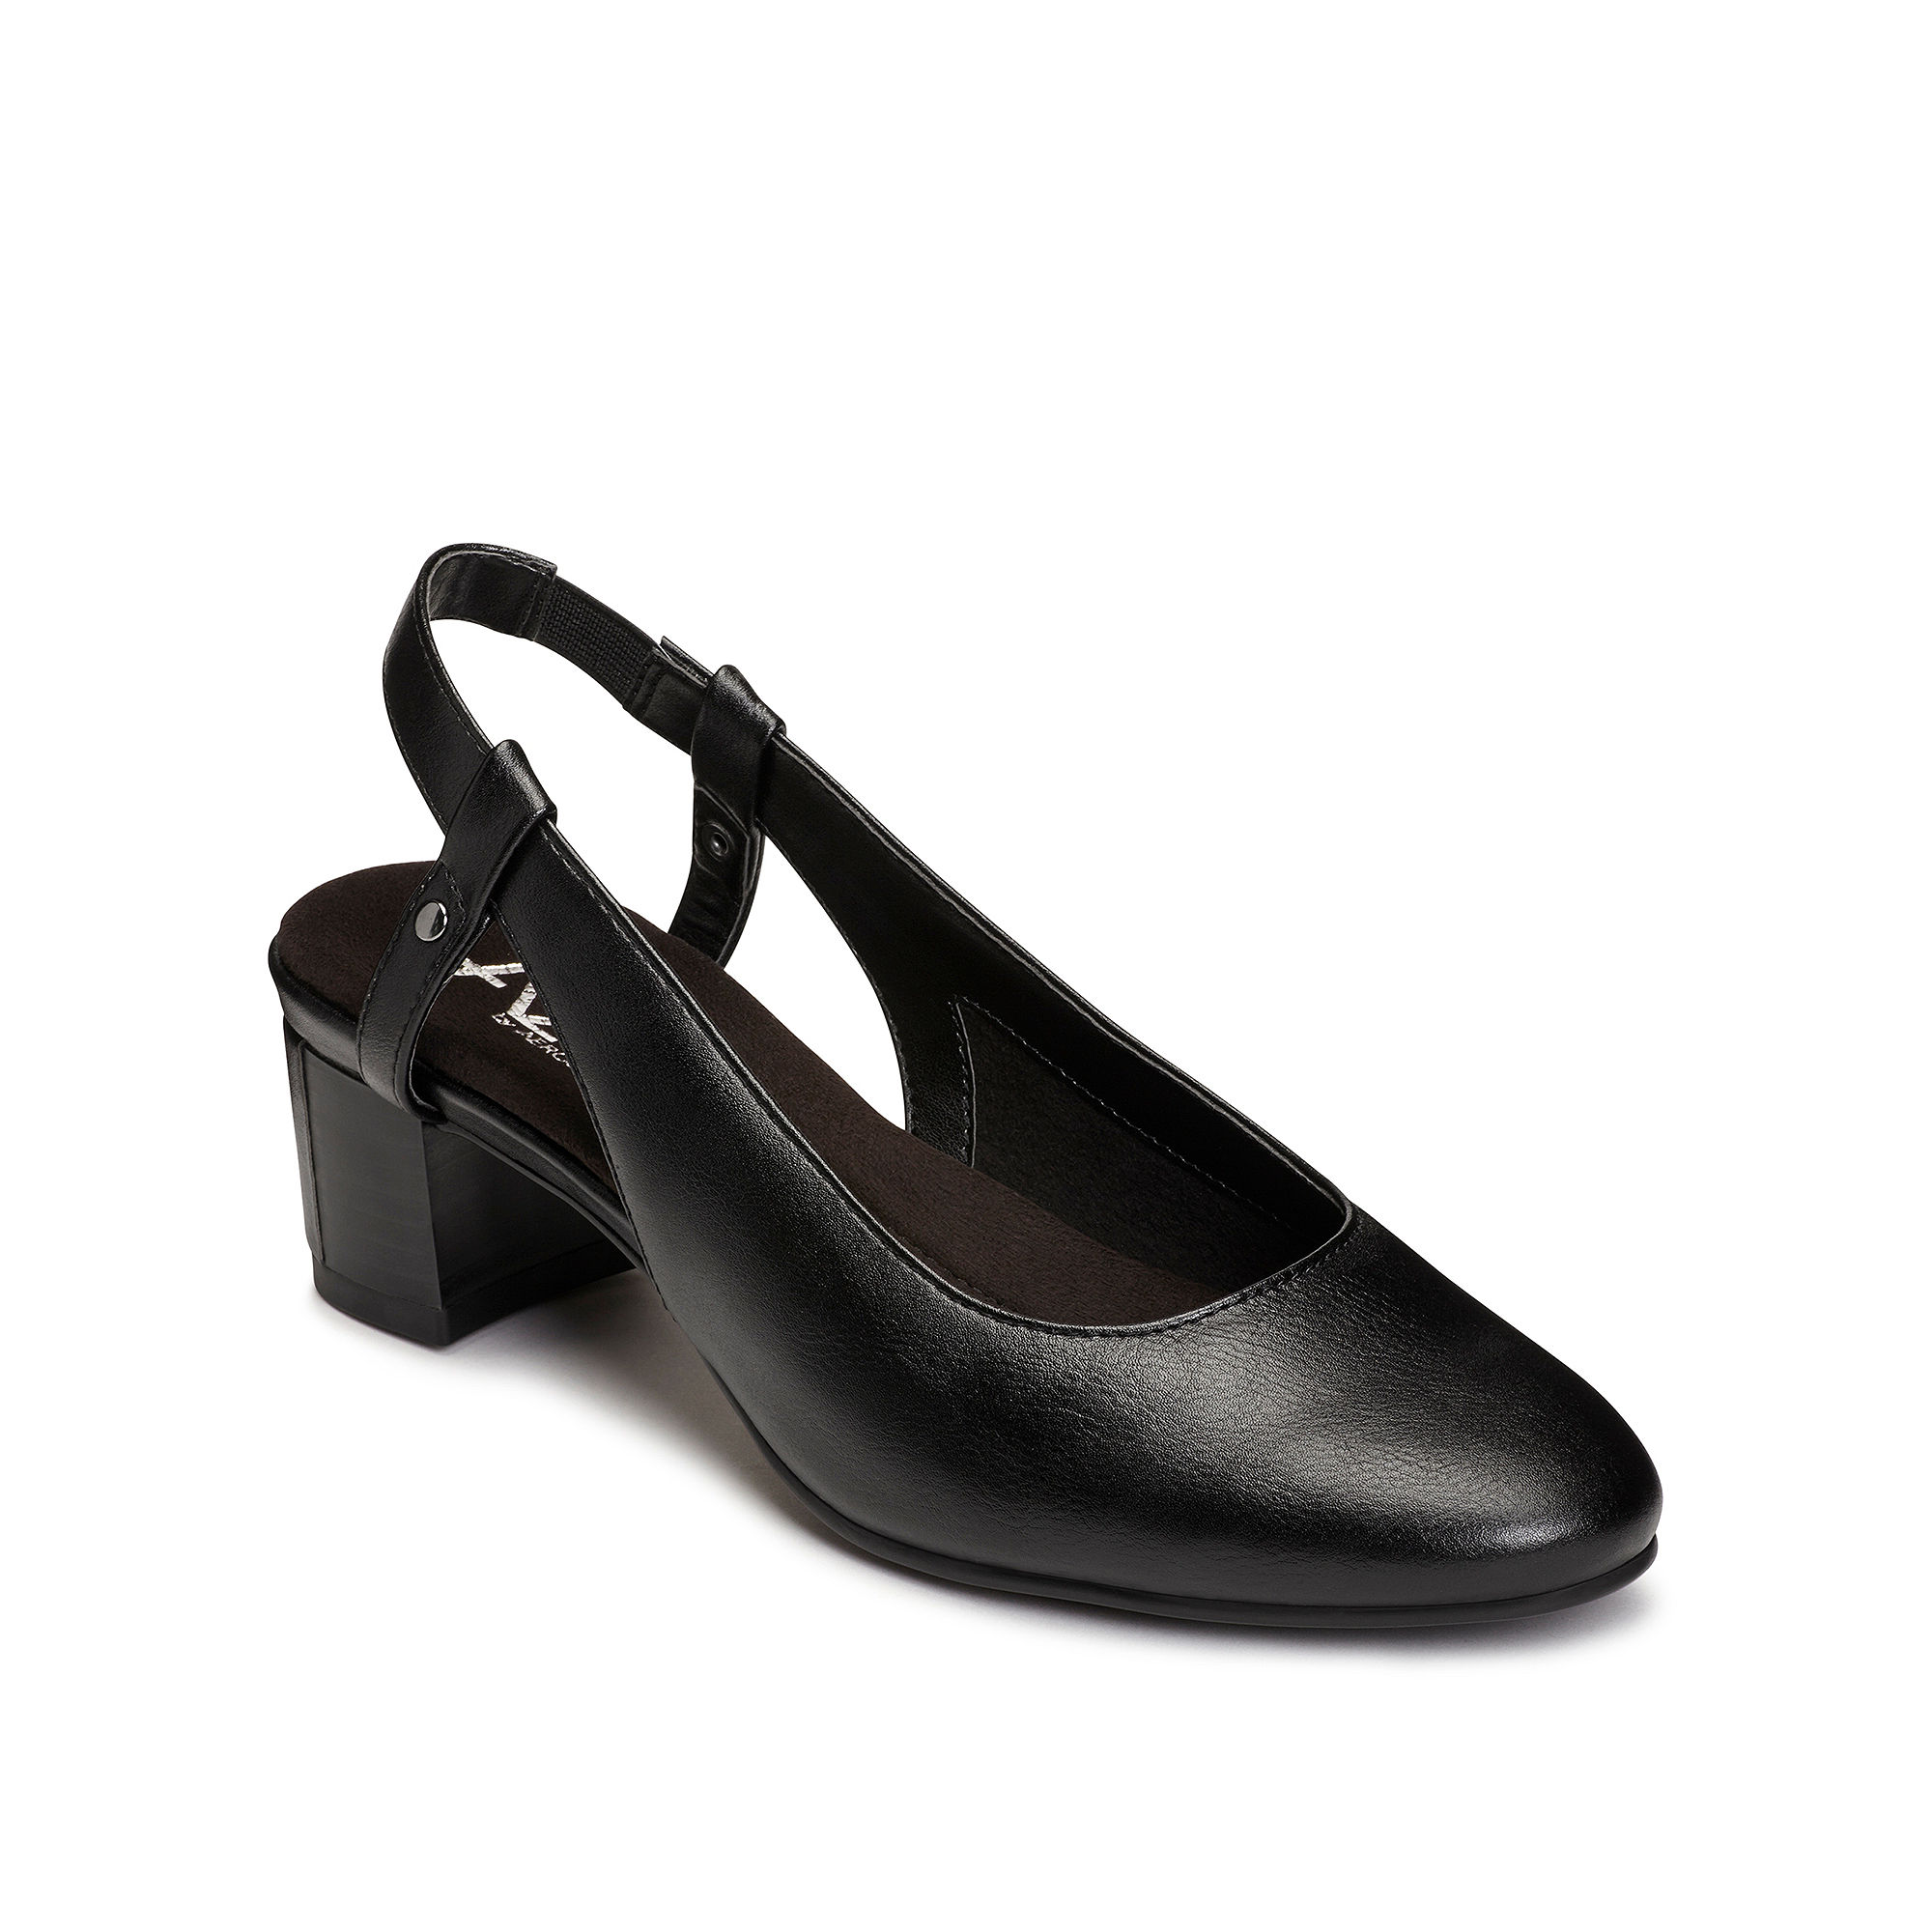 Women's A2 by Aerosoles Track Pad Pumps - Black 5.5